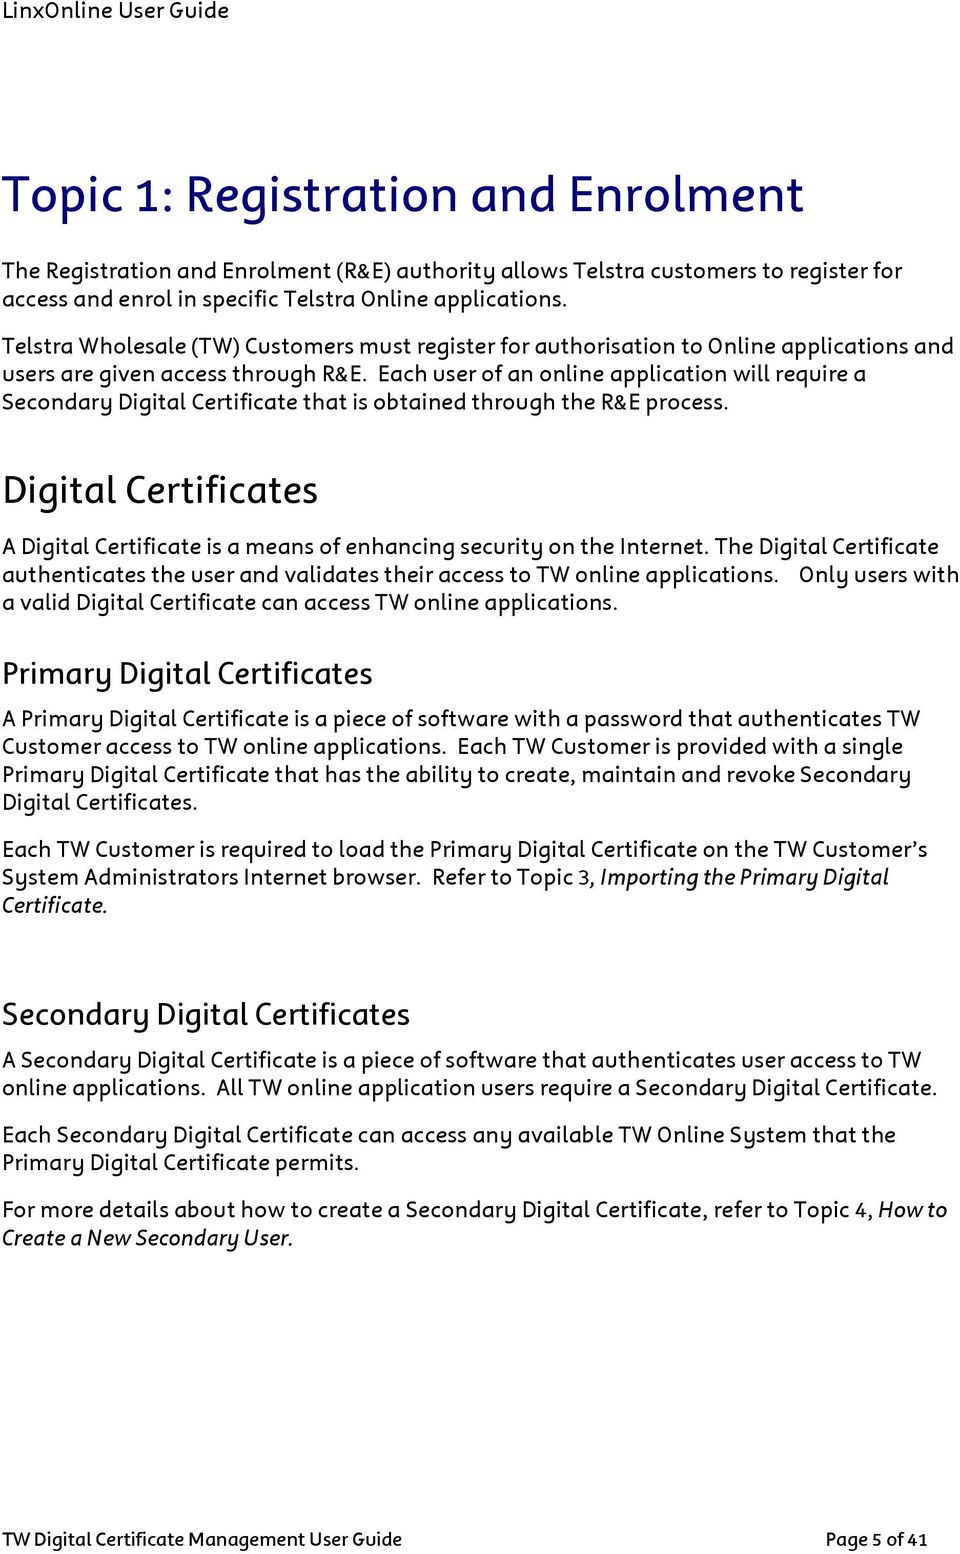 Each user of an online application will require a Secondary Digital Certificate that is obtained through the R&E process.